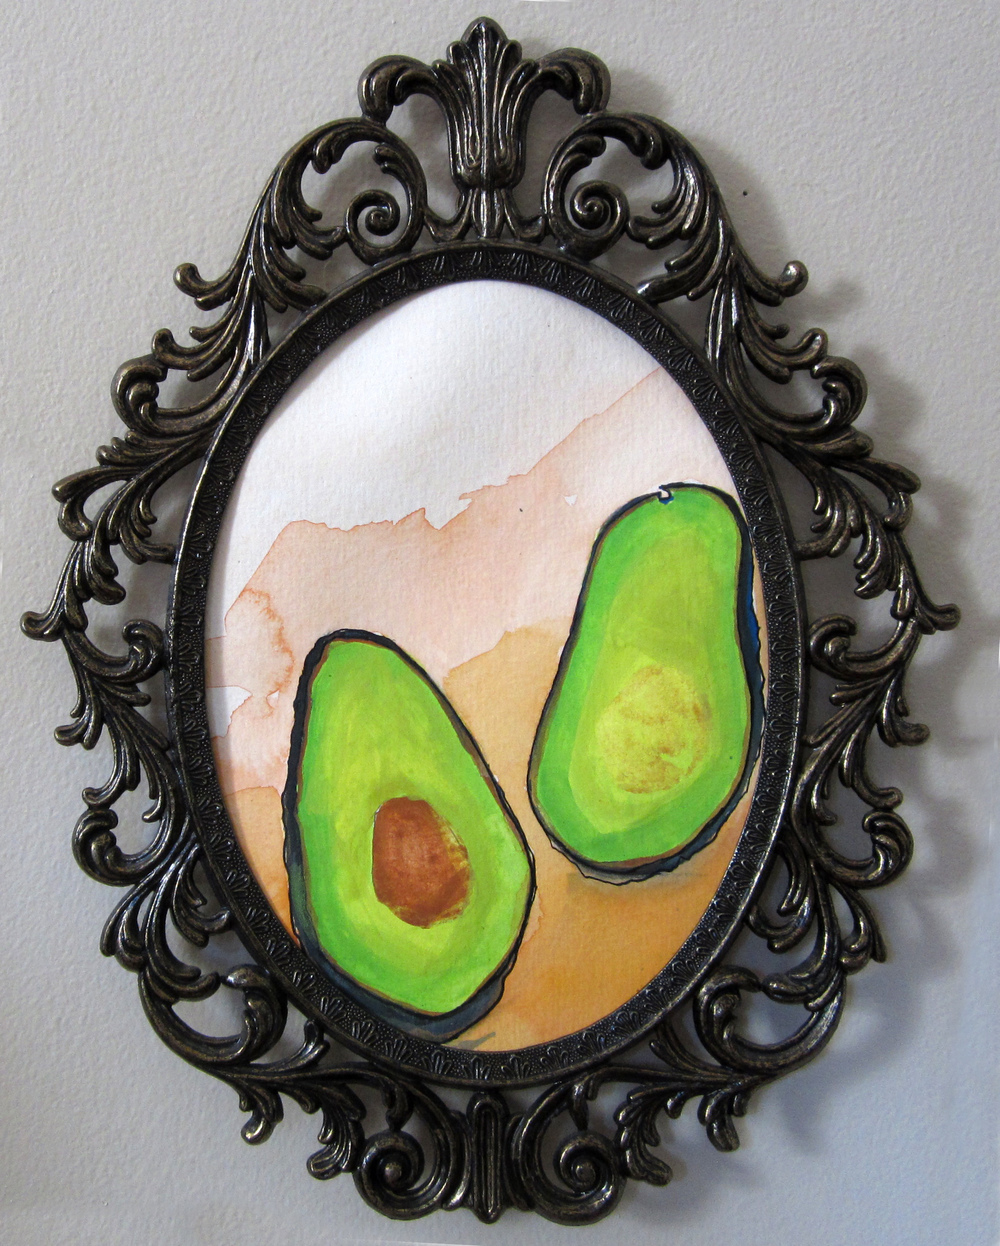 16: Avocado a Day-Sold